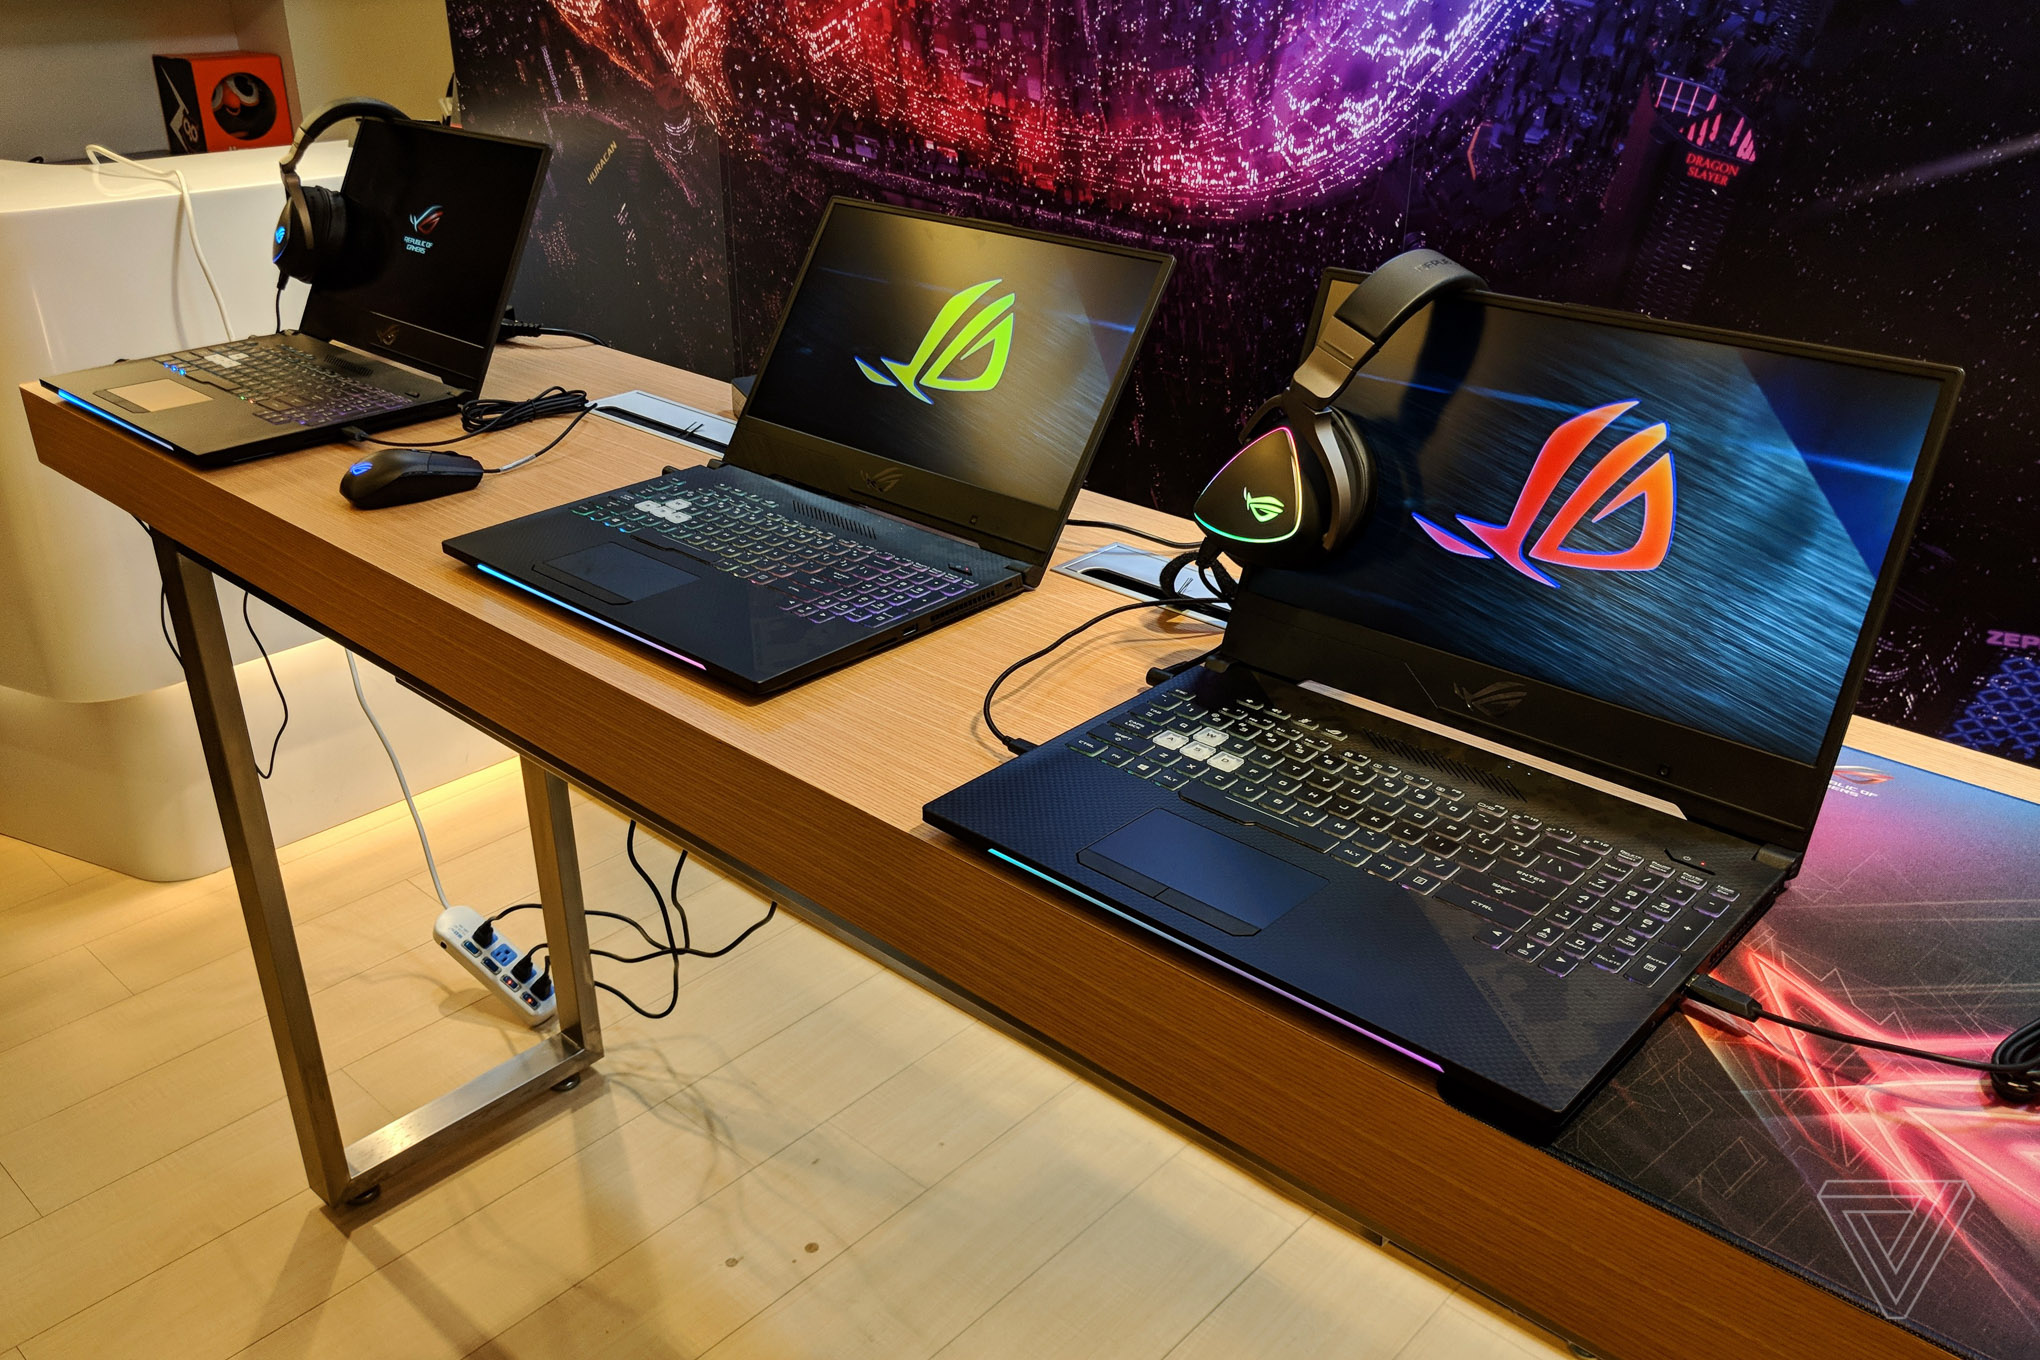 f96c101327e Asus' new ROG gaming laptops have MOBA and FPS keyboard layouts ...